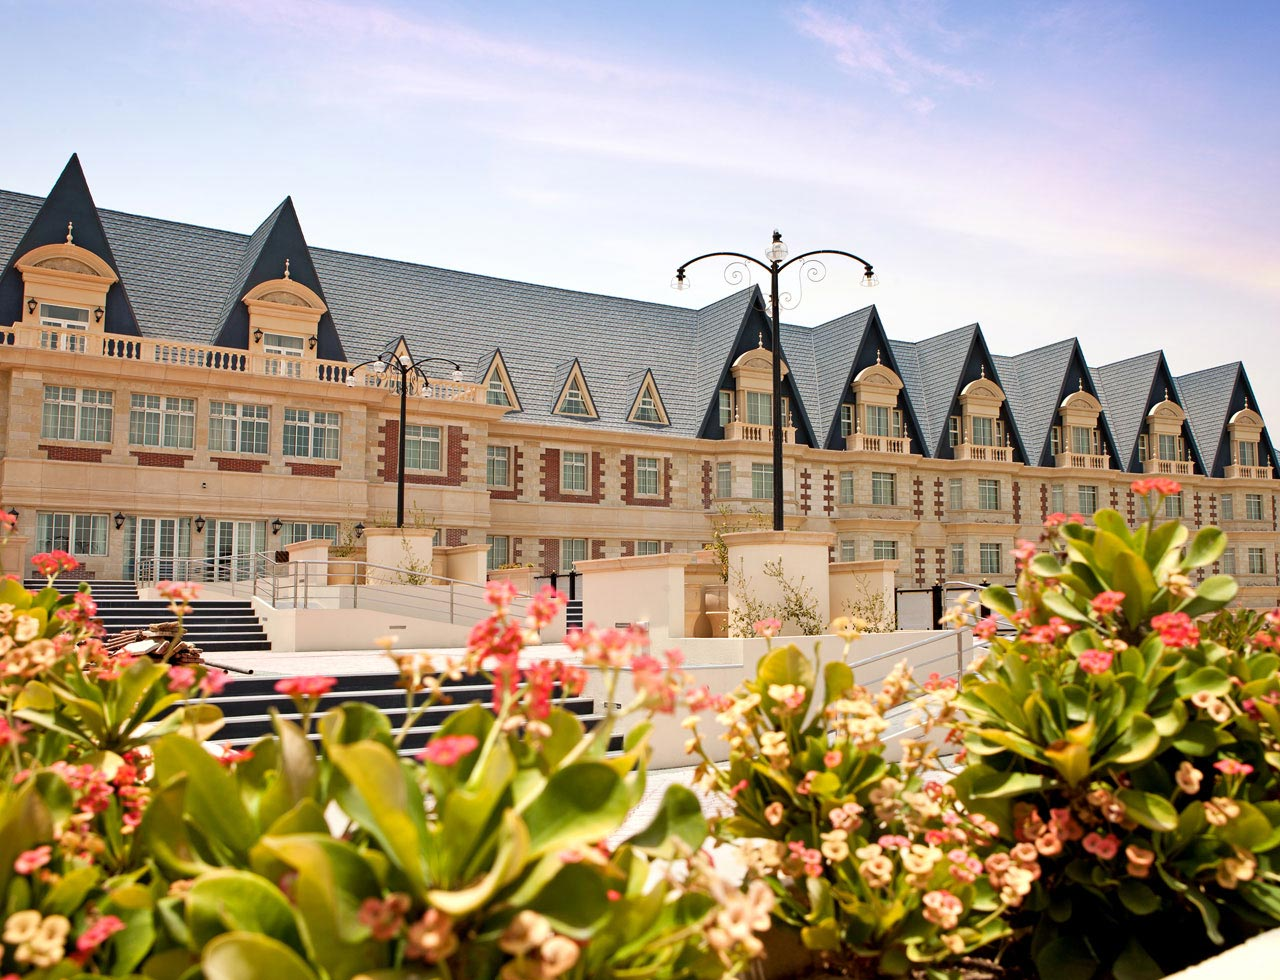 Grand-Heritage-Hotel-01a